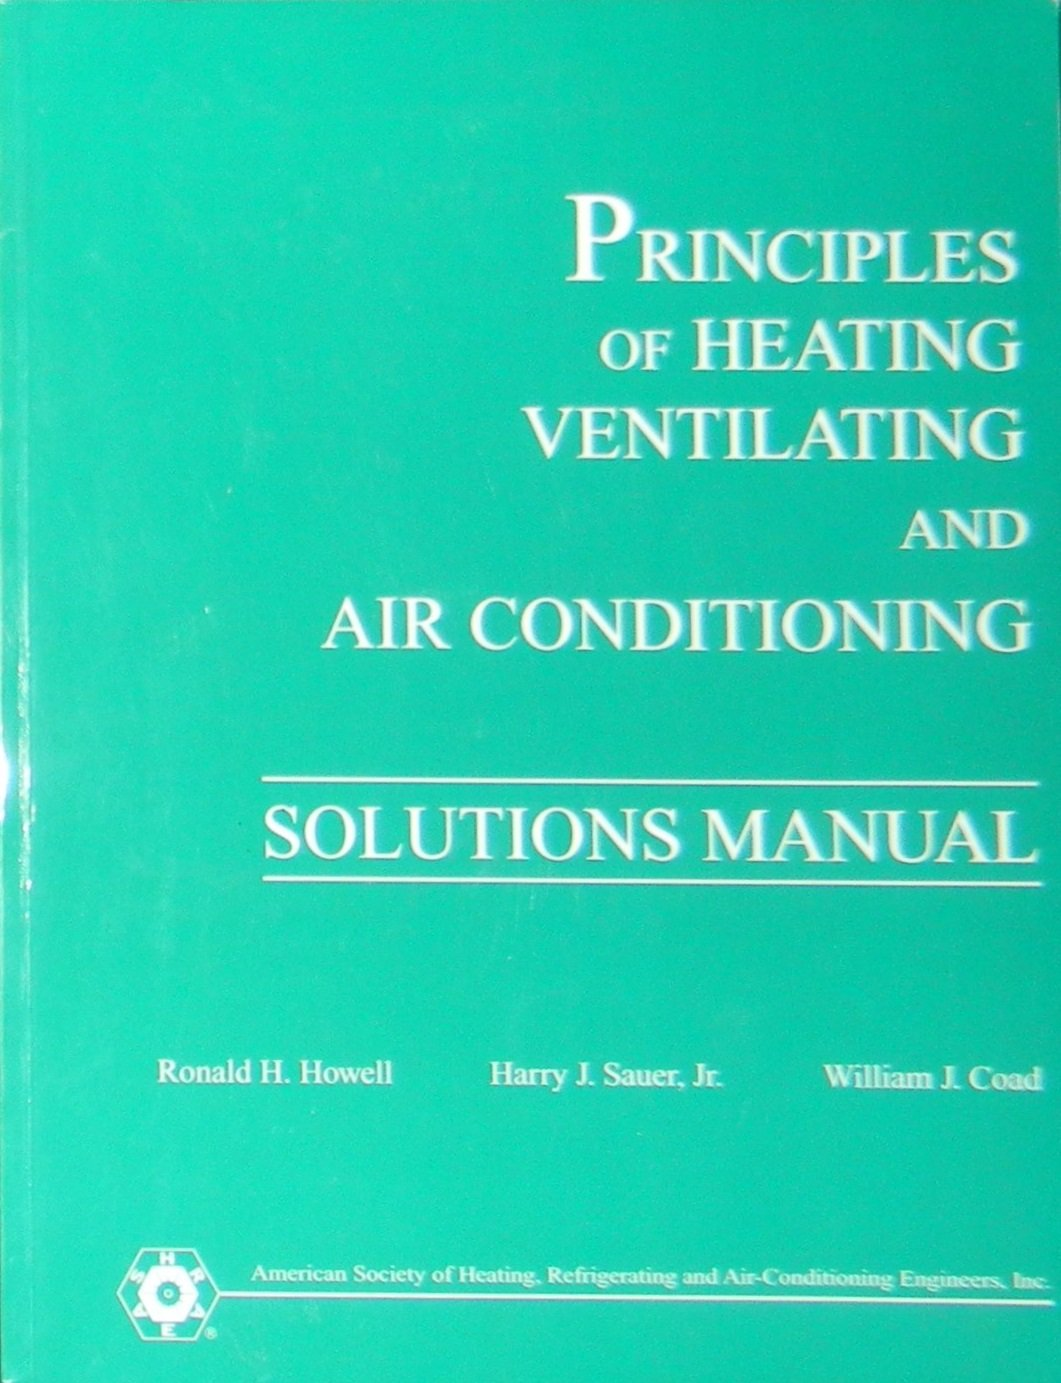 Principles of Heating Ventilating and Air Conditioning (SOLUTIONS MANUAL):  Amazon.co.uk: Inc. ASHRAE: 9781931862936: Books